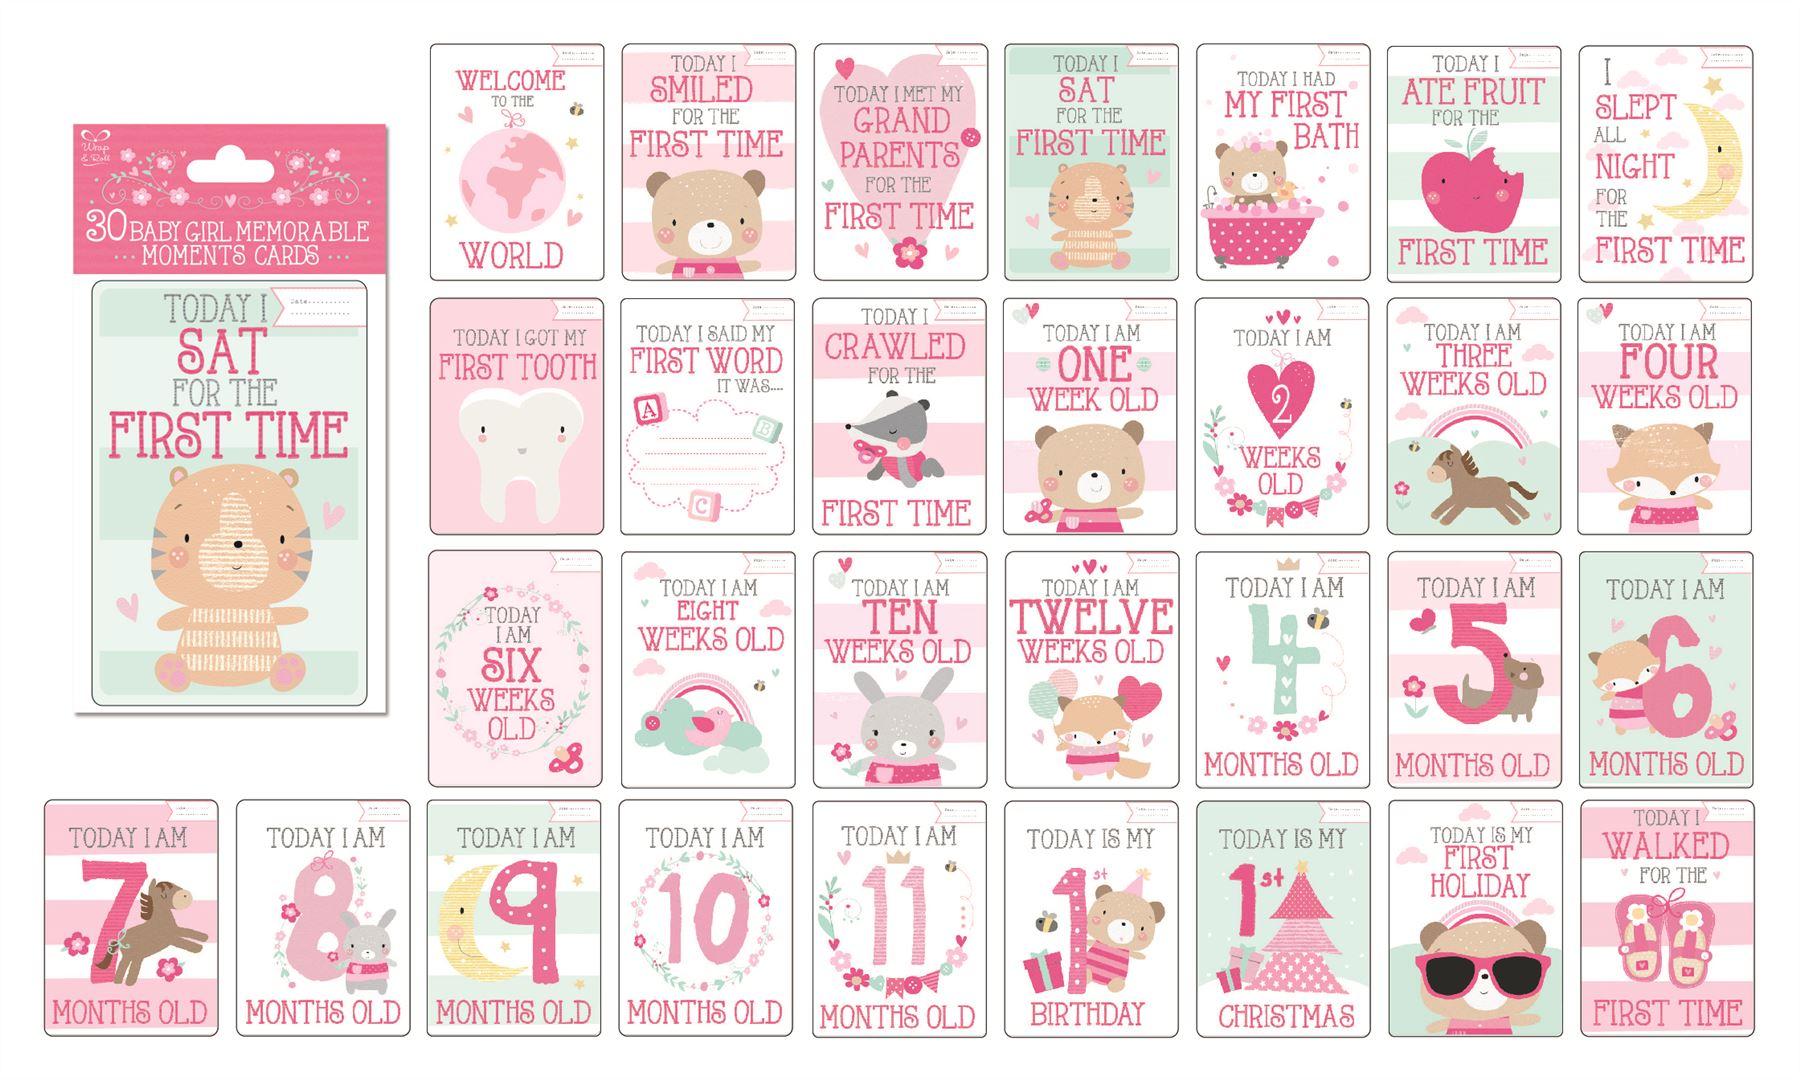 Baby Gift Cards Uk : Baby memorable moments milestone cards boy girl